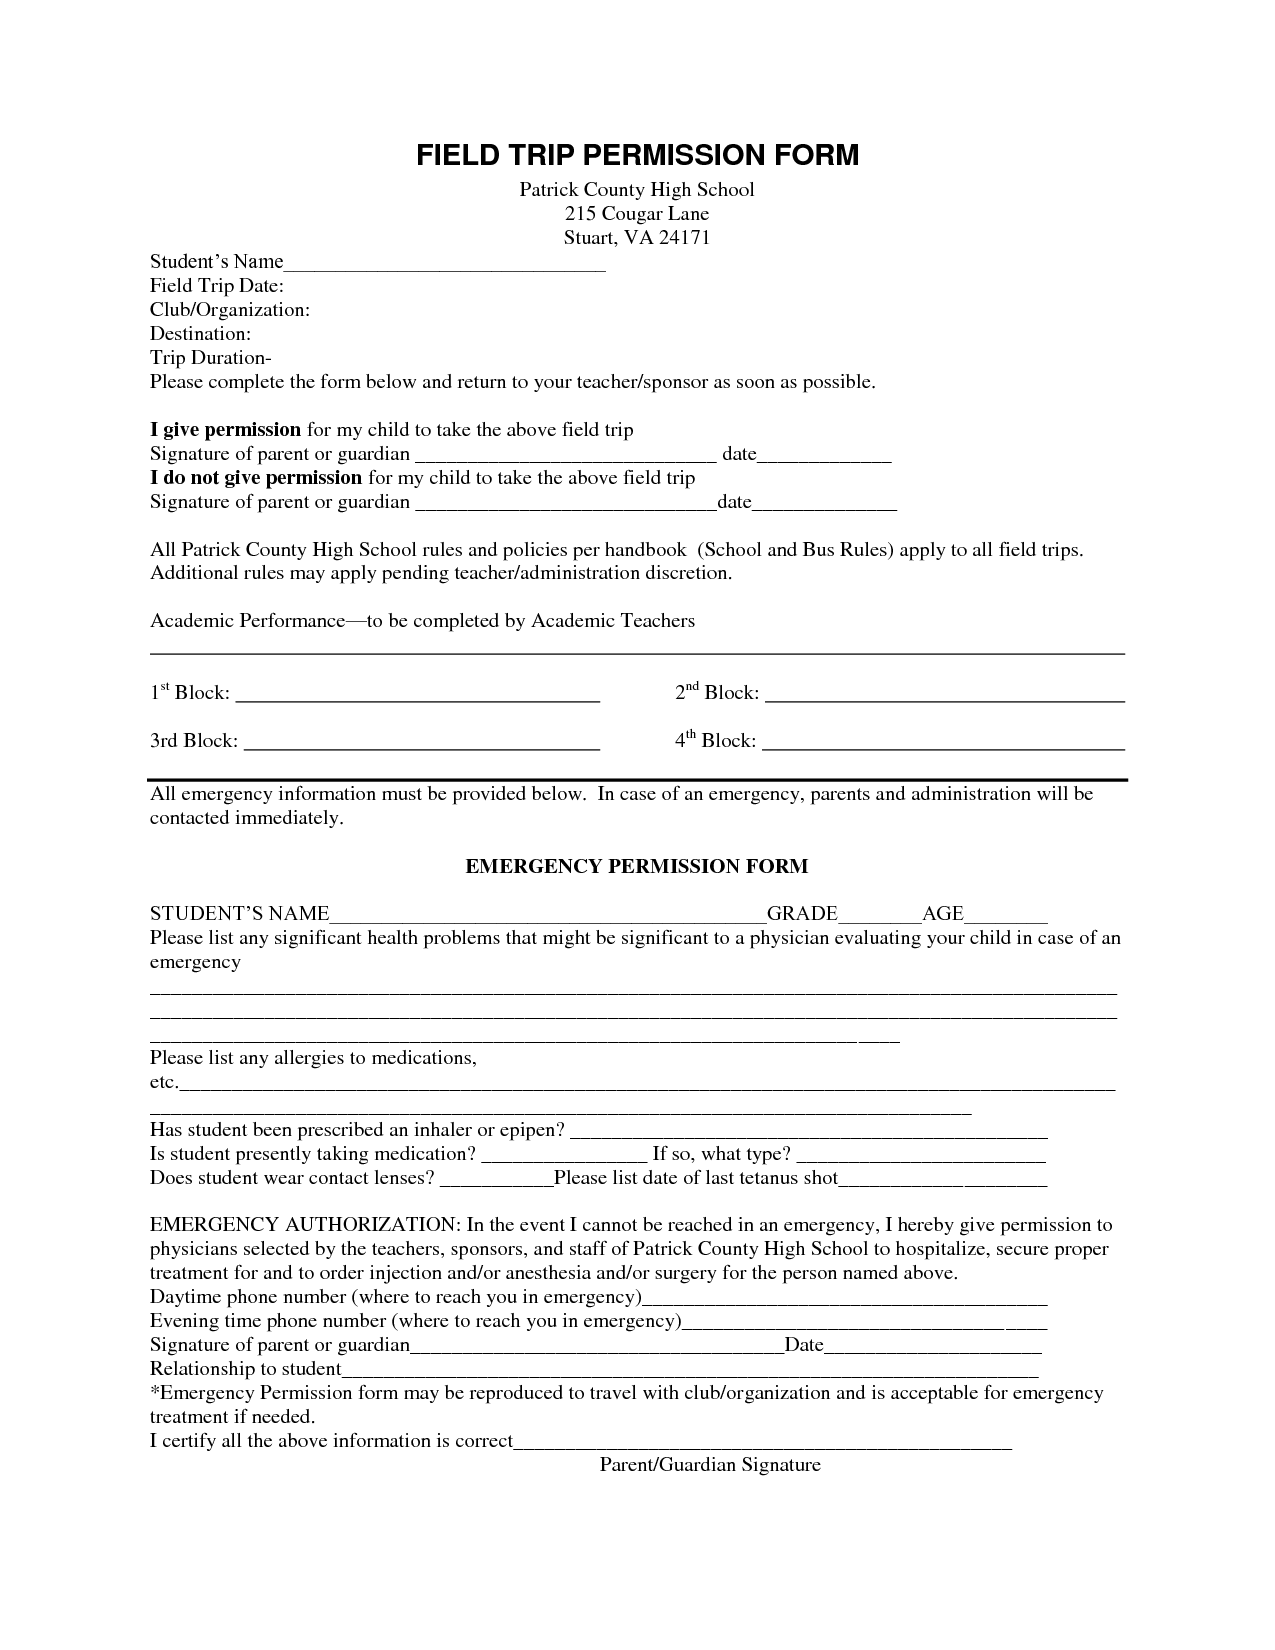 School field trip permission form template kubreforic school field trip permission form template awesome permission slip for field trip template school field maxwellsz